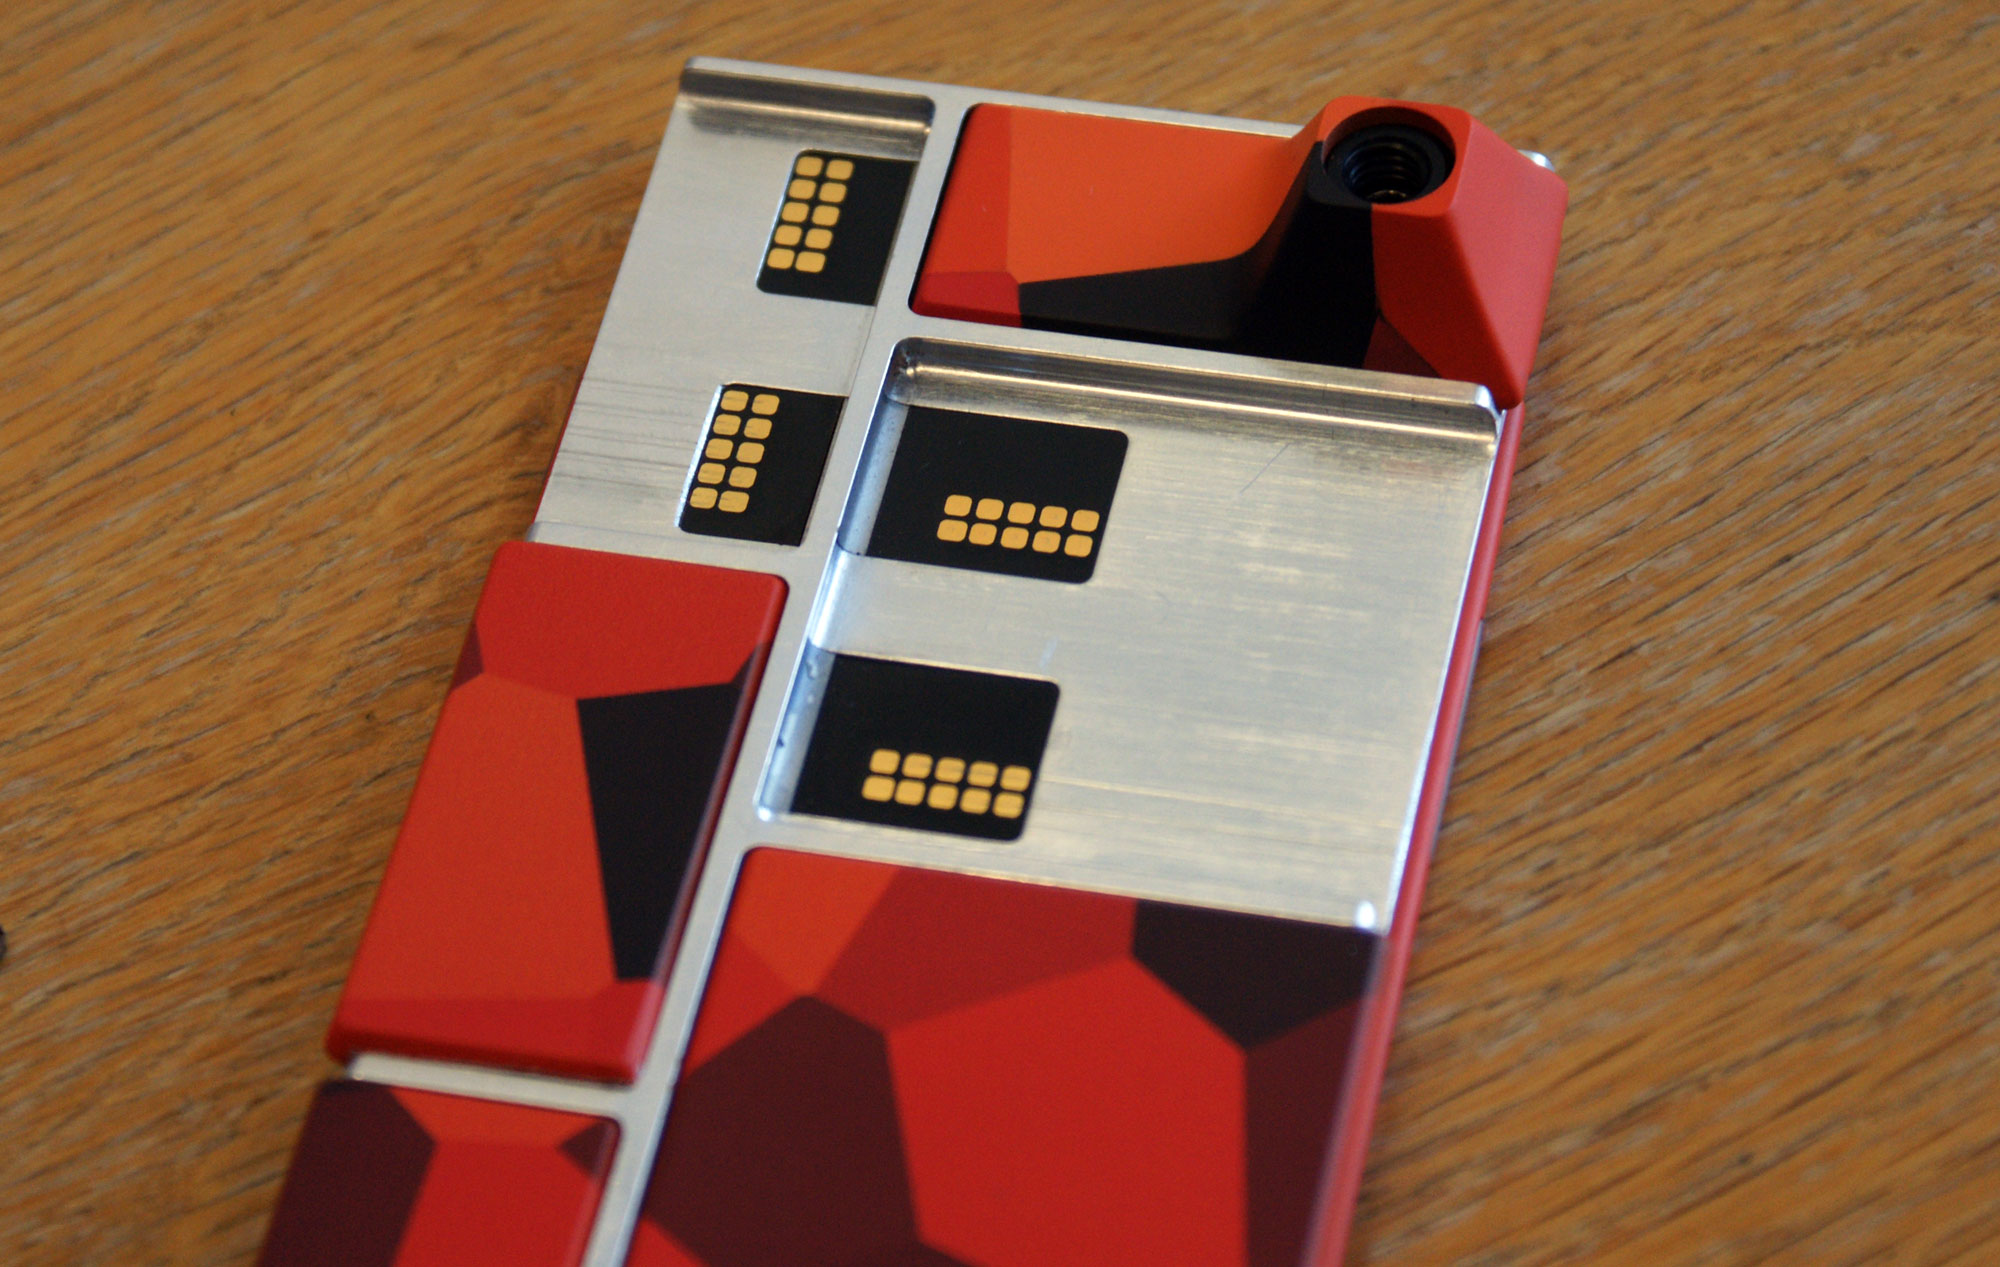 10 Things to Know About Google's Project Ara Smartphone